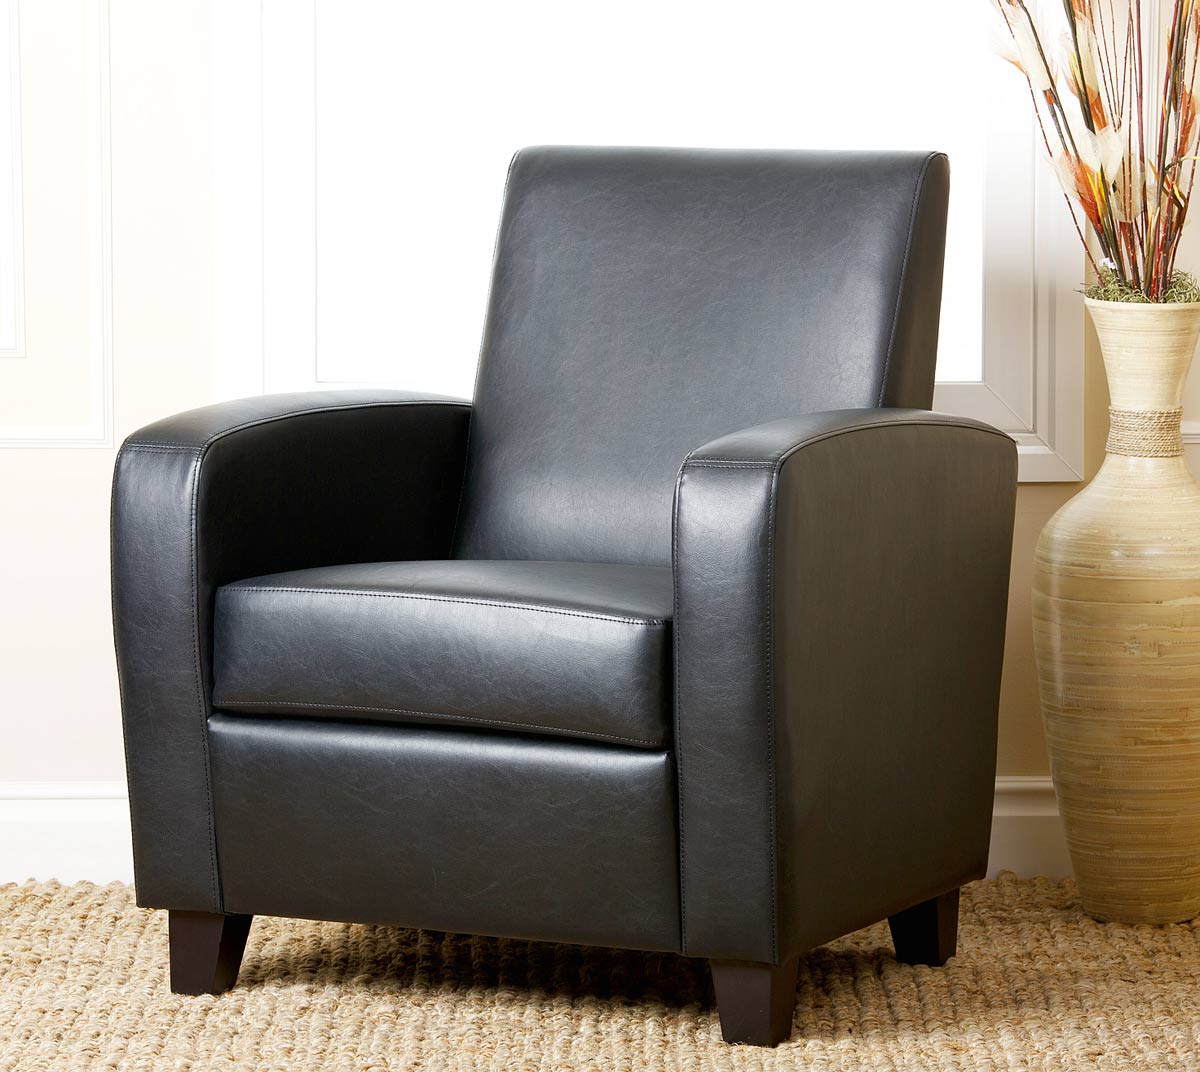 Abbyson Living Mercer Bonded Leather Club Chair - Black